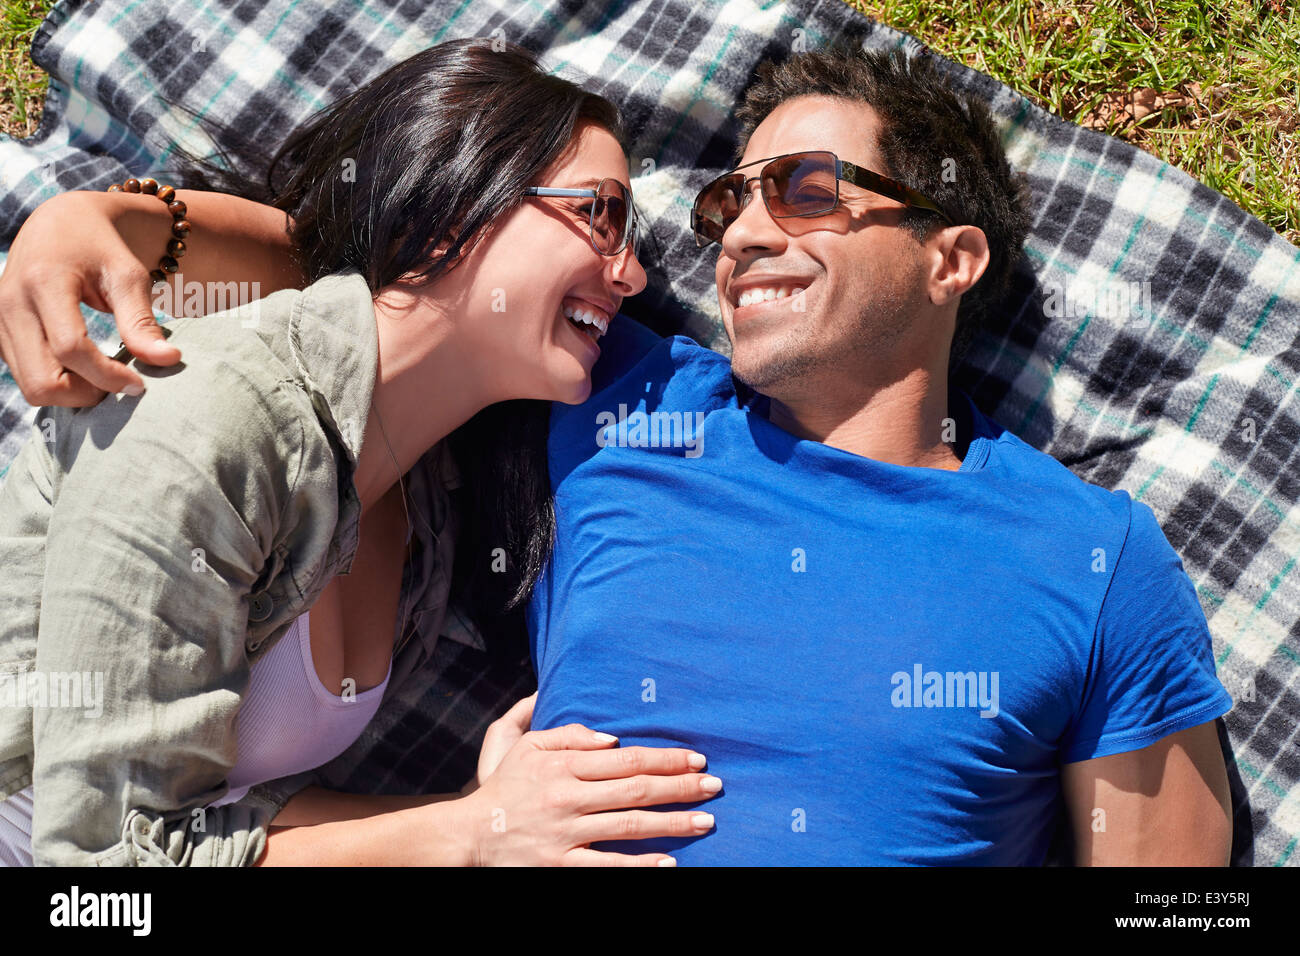 Overhead view of couple on picnic blanket - Stock Image